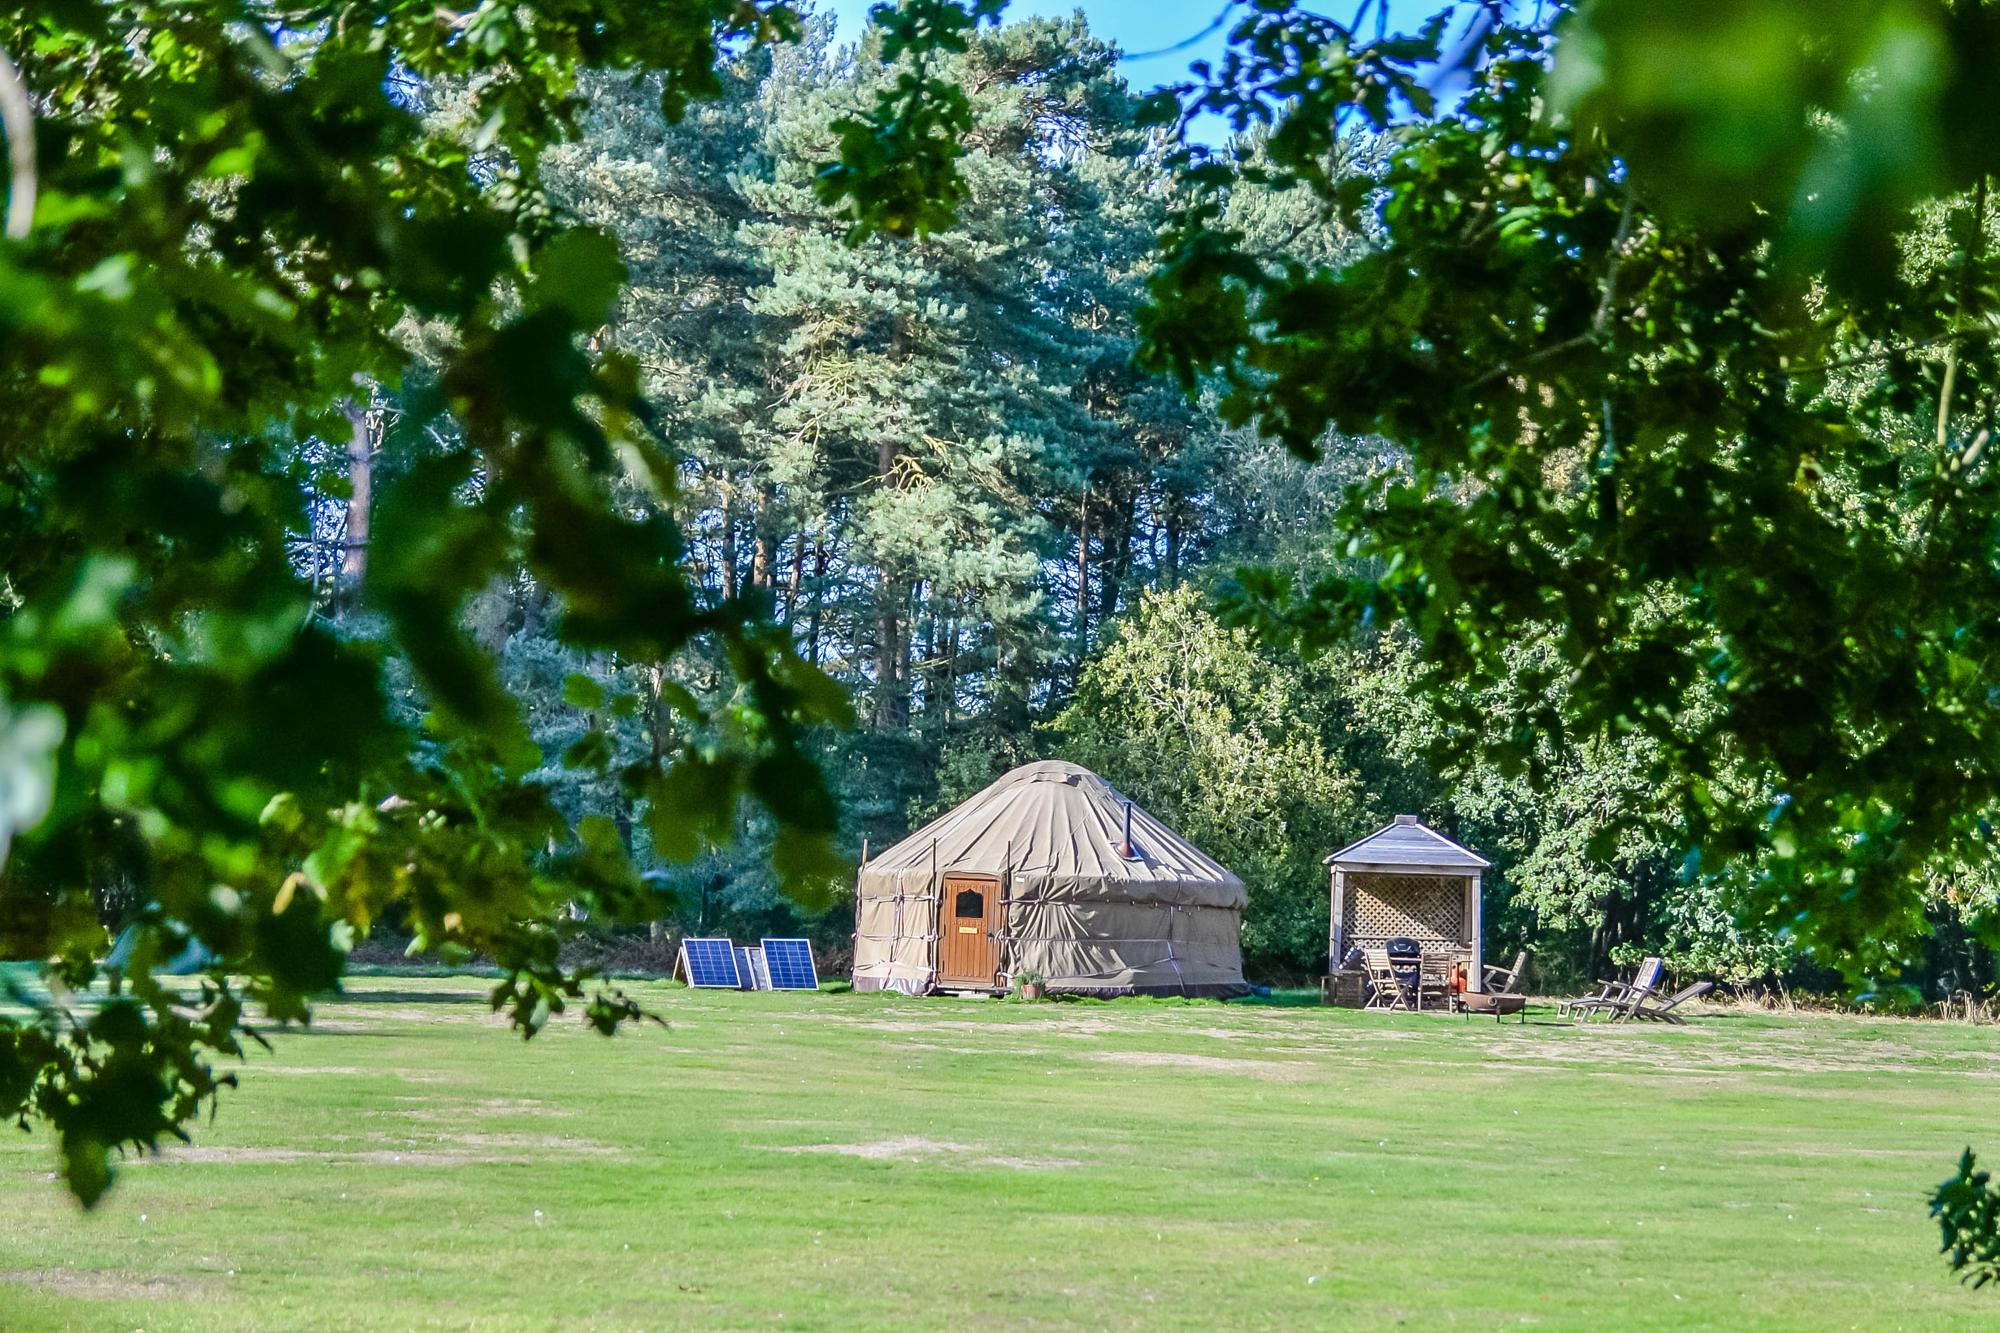 Glamping in Holt holidays at Glampingly